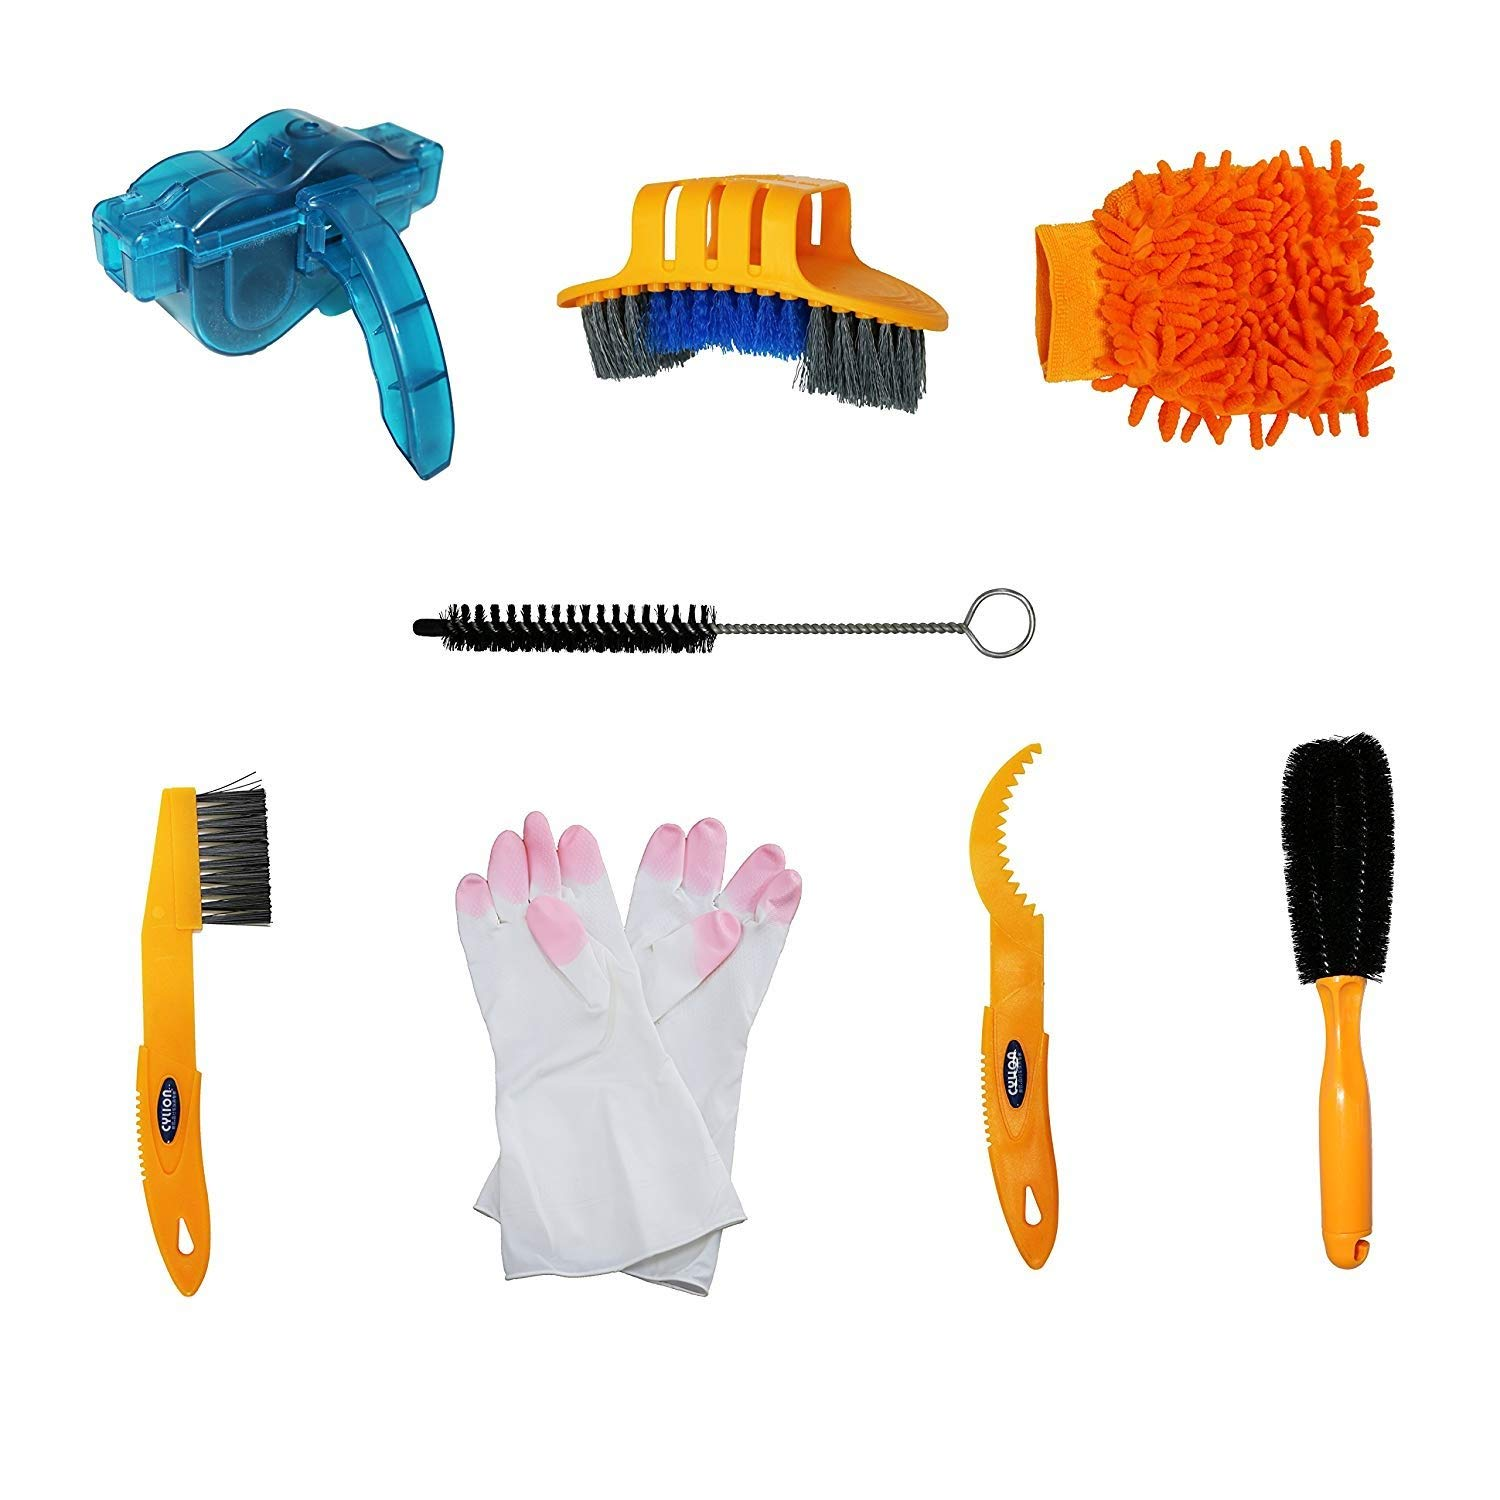 Bicycle Cleaning Tool Kits 8 Pieces Bike Cleaning Toll Bike Chain Cleaner Tool Wheel Cleaner Brush Compact Multipurpose Practical for Mountain, Road, City, Hybrid,BMX Bike and Folding Bike